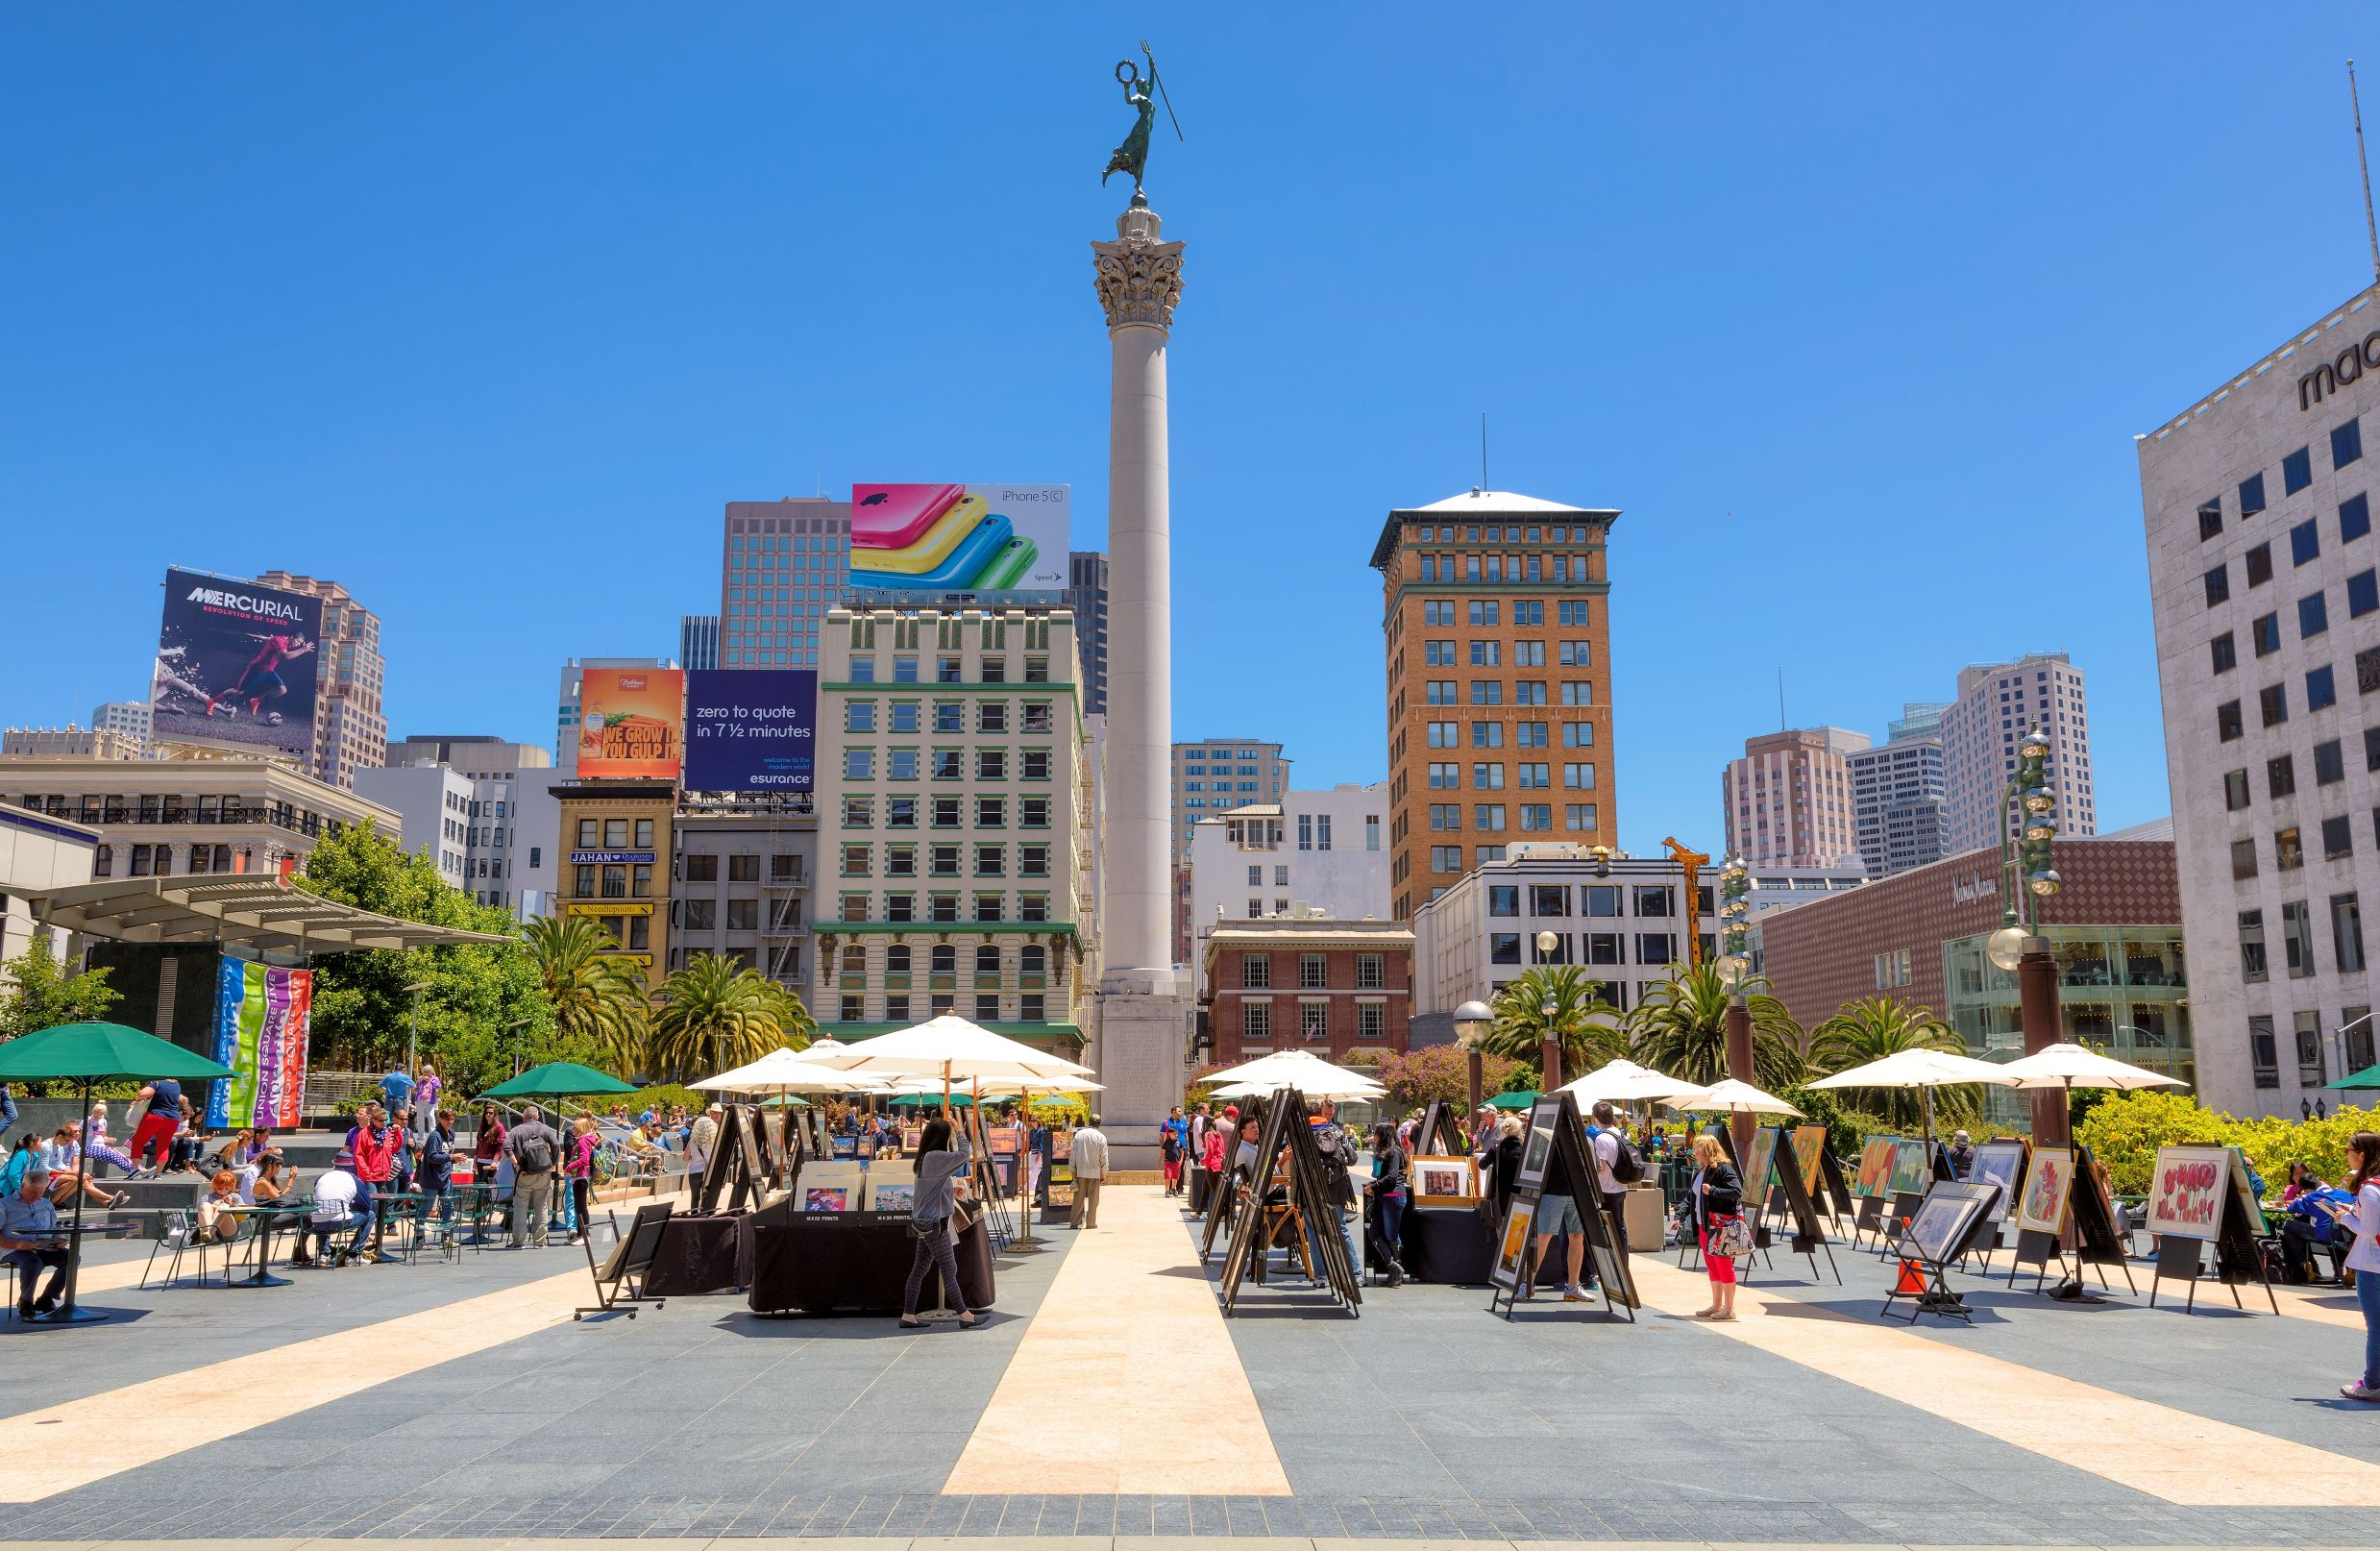 Photo of Union Square in, one of the best places to stay in San Francisco. Photo features main tall buildings with a main square holding an art show.